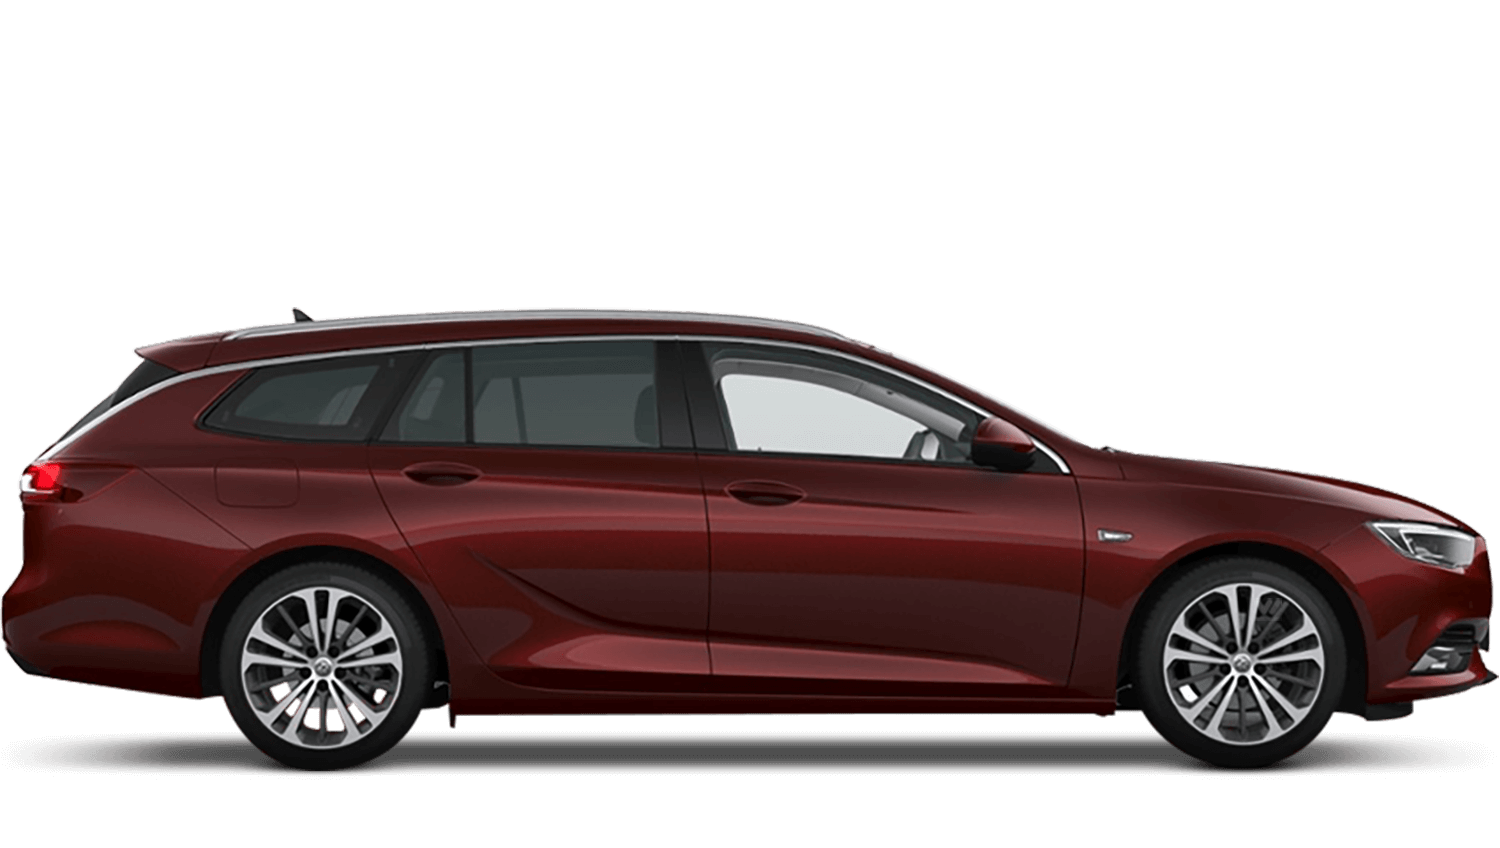 Rioja Red (Premium) Vauxhall Insignia Sports Tourer